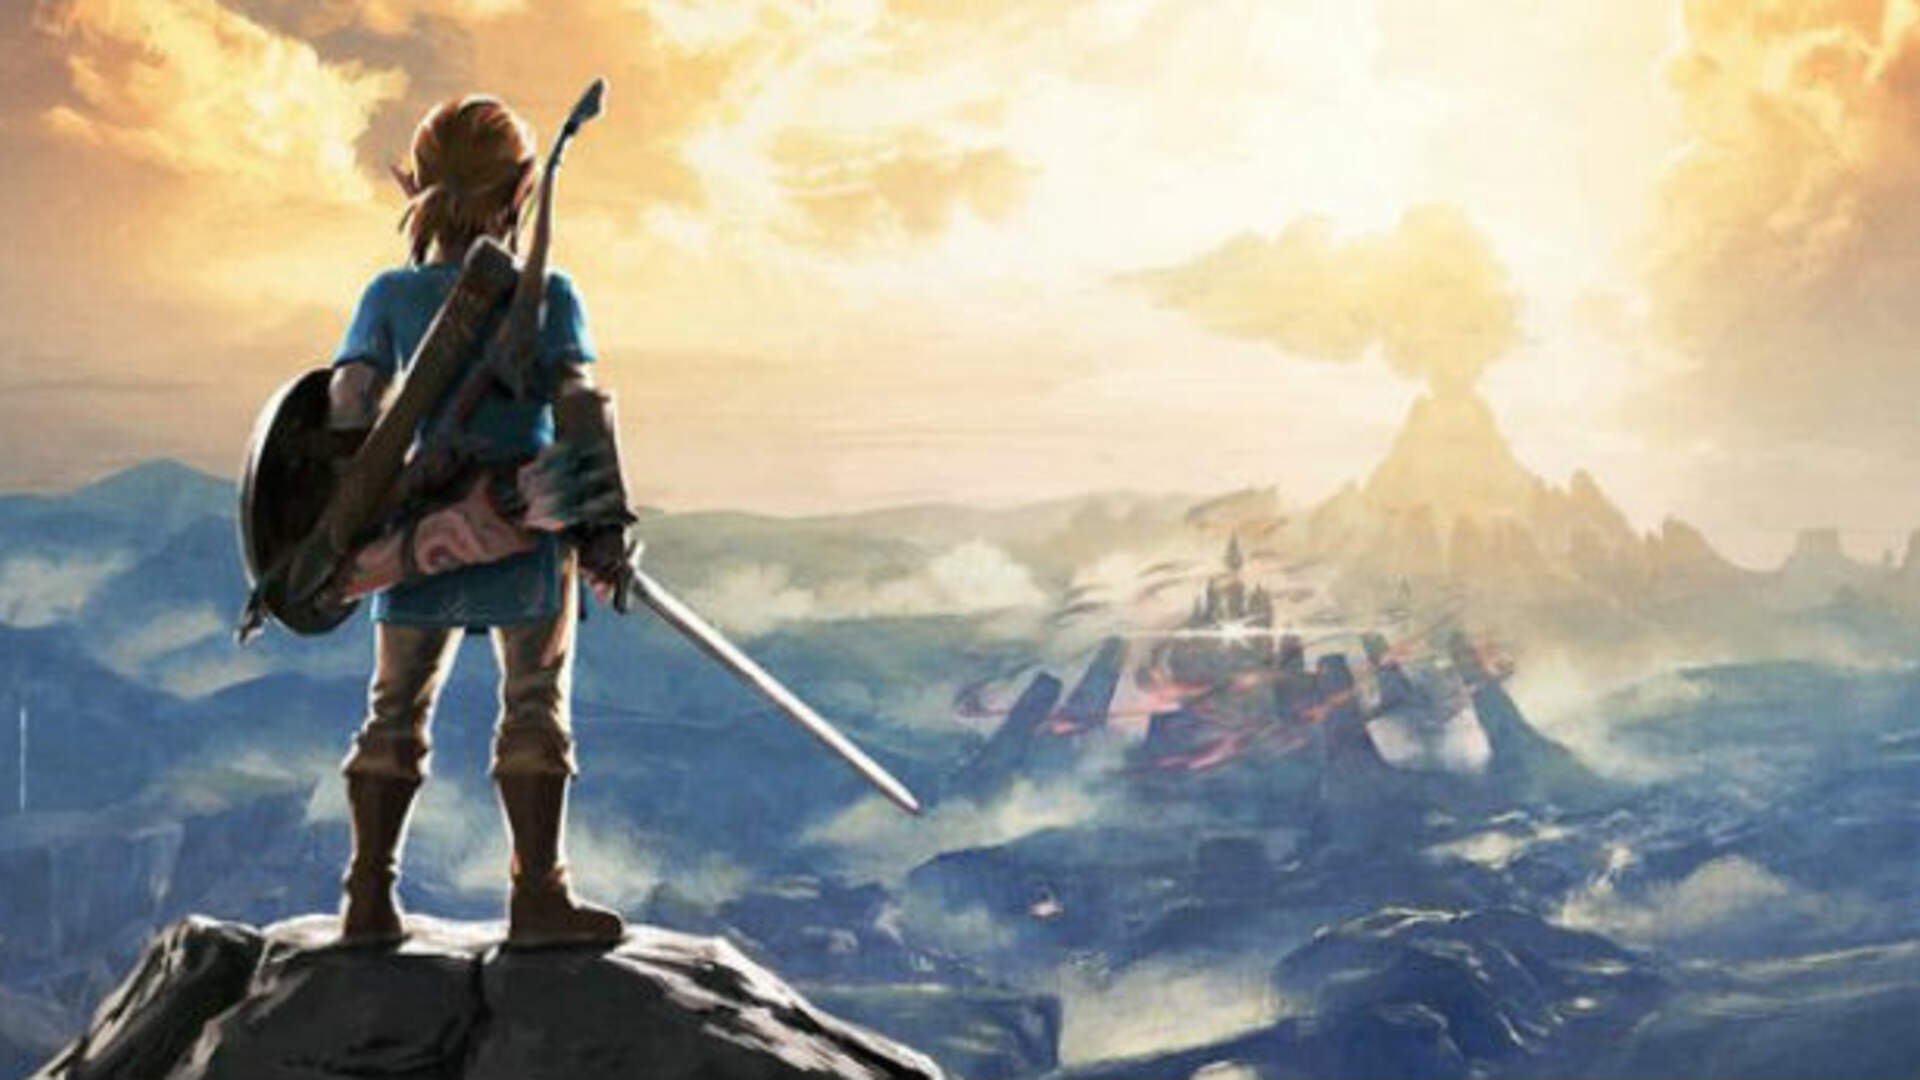 The Japanese Commercial for The Legend of Zelda: Breath of the Wild Looks Swell